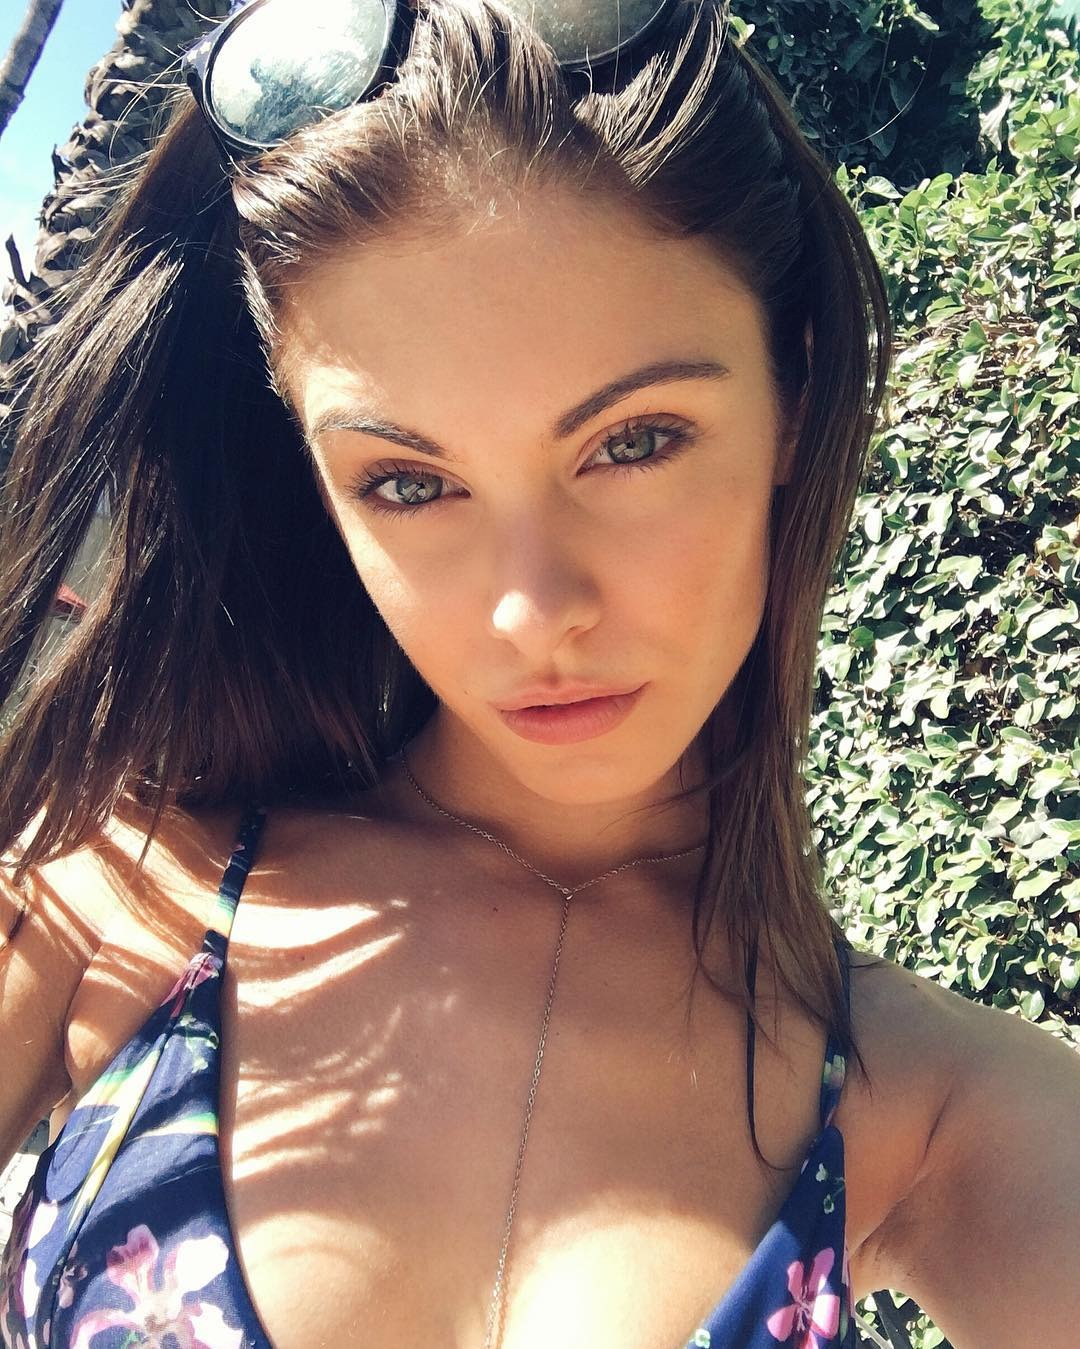 Is Carmella Rose the most beautiful girl in the world?